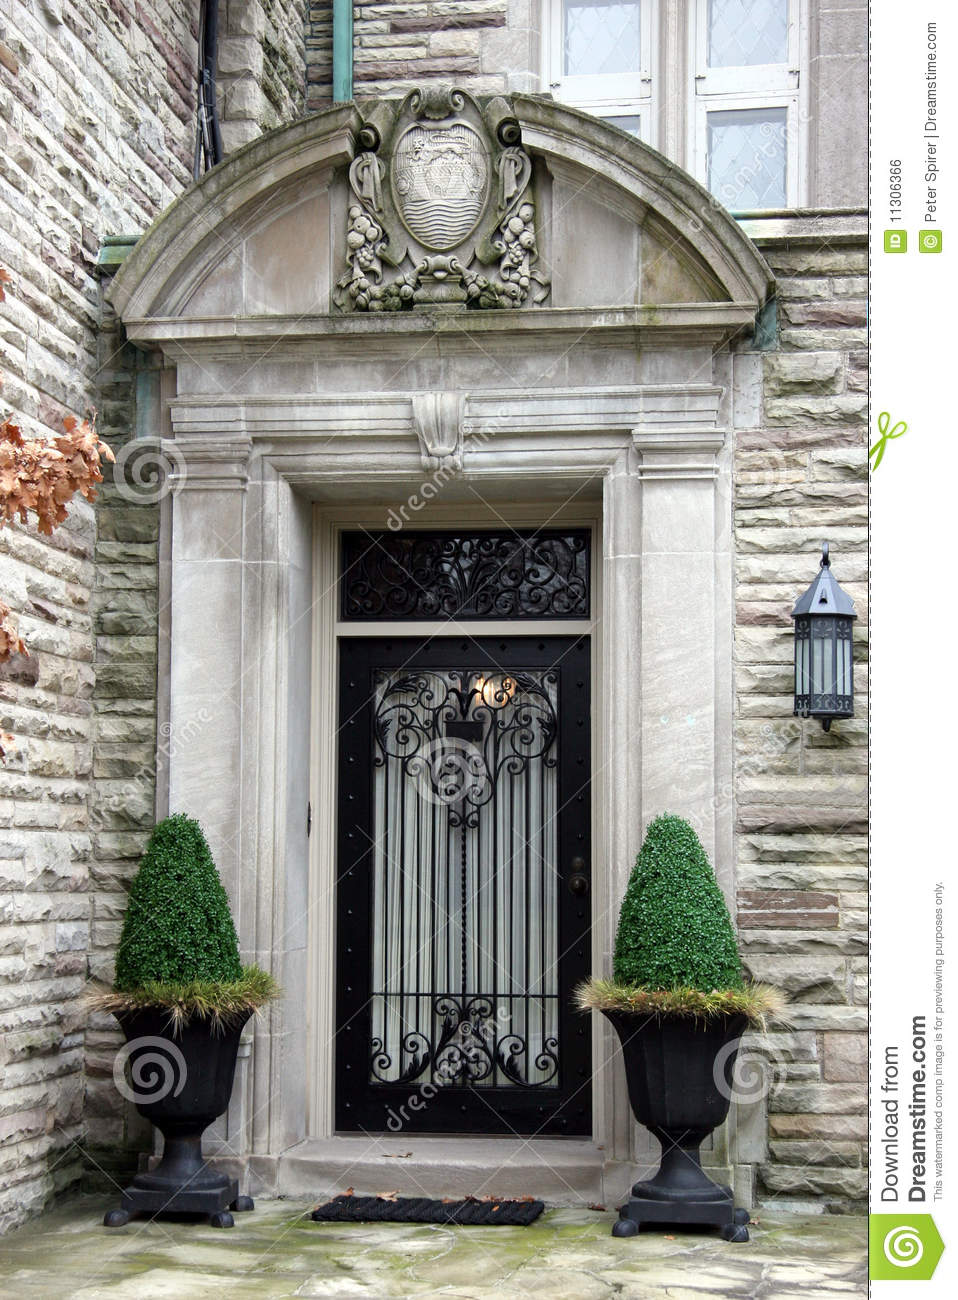 Elegant front door royalty free stock image image 11306366 for Elegant front doors